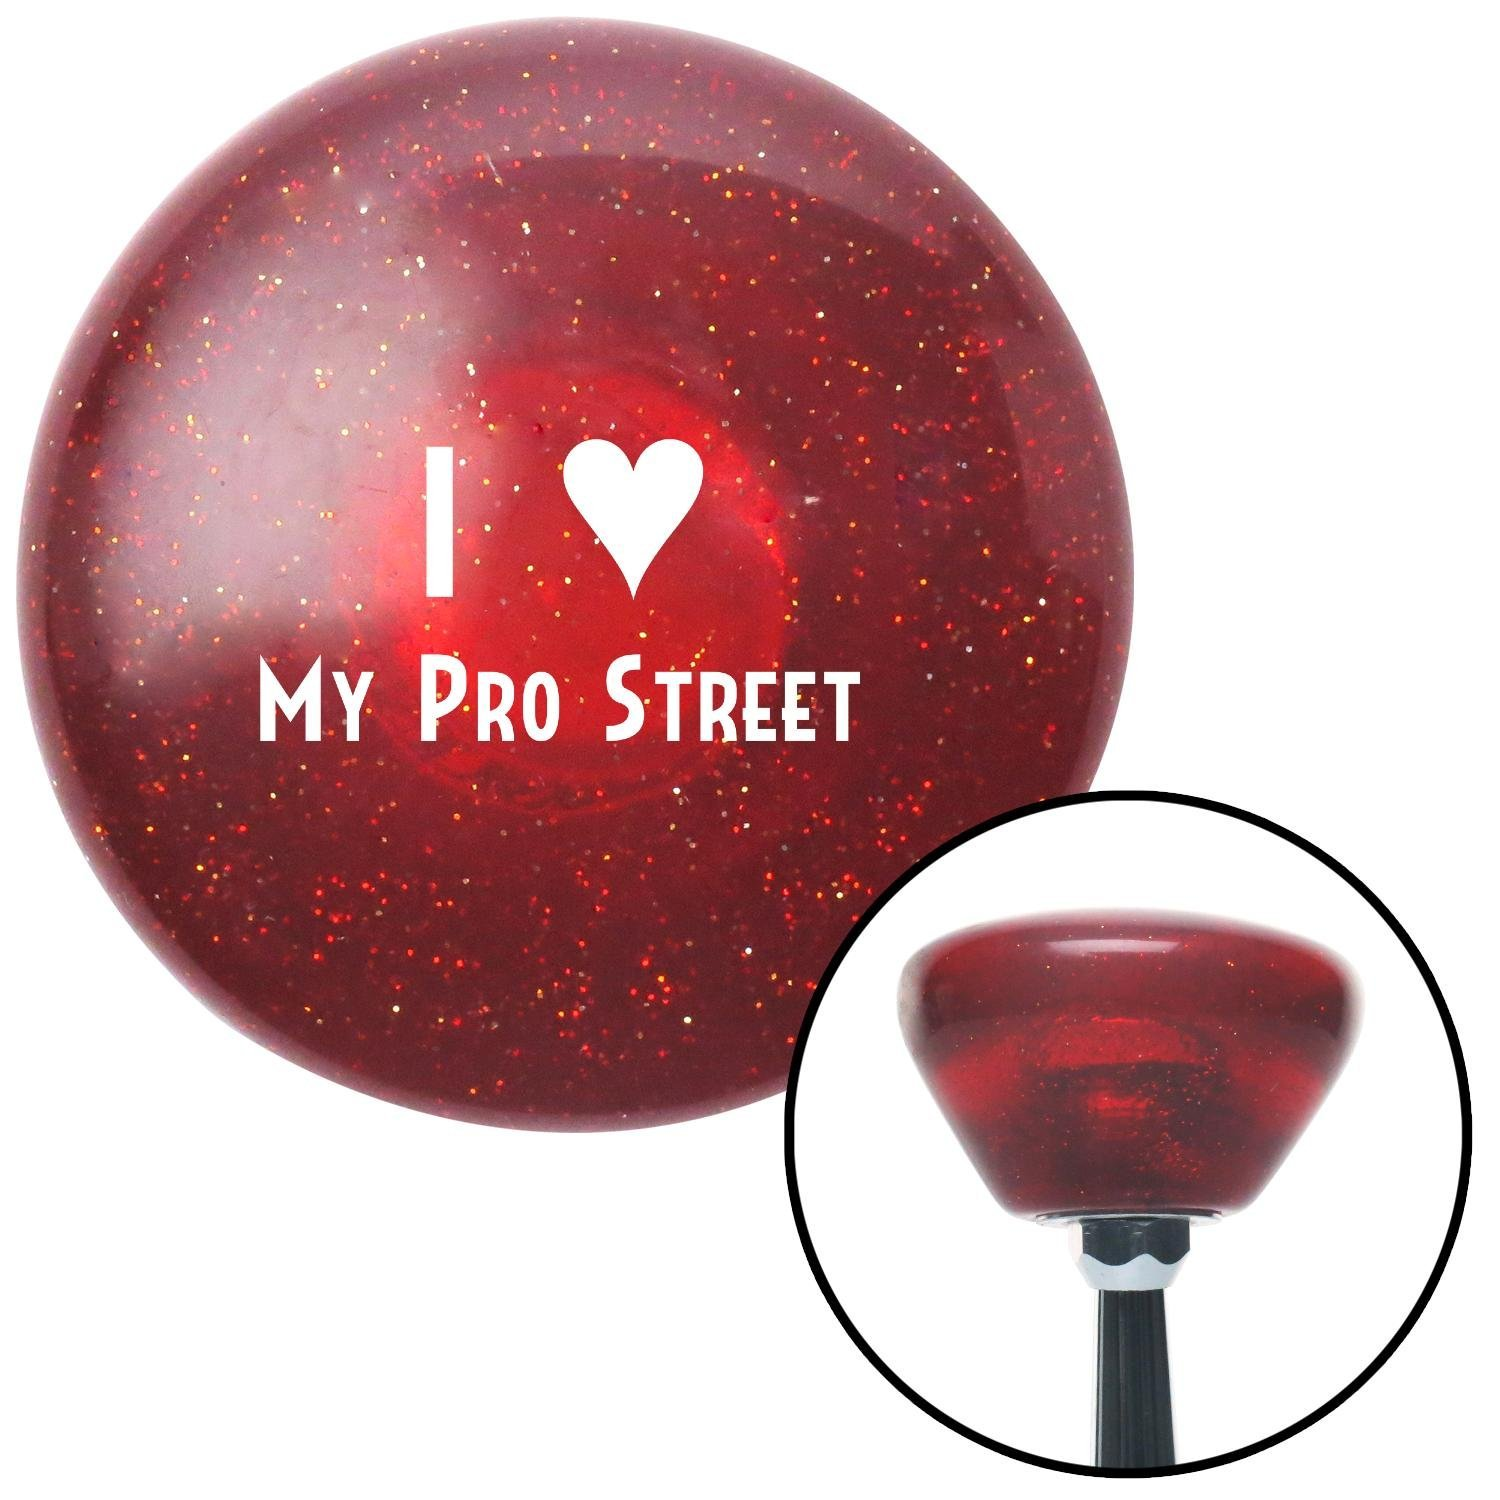 American Shifter 194687 Red Retro Metal Flake Shift Knob with M16 x 1.5 Insert White I 3 My PRO Street